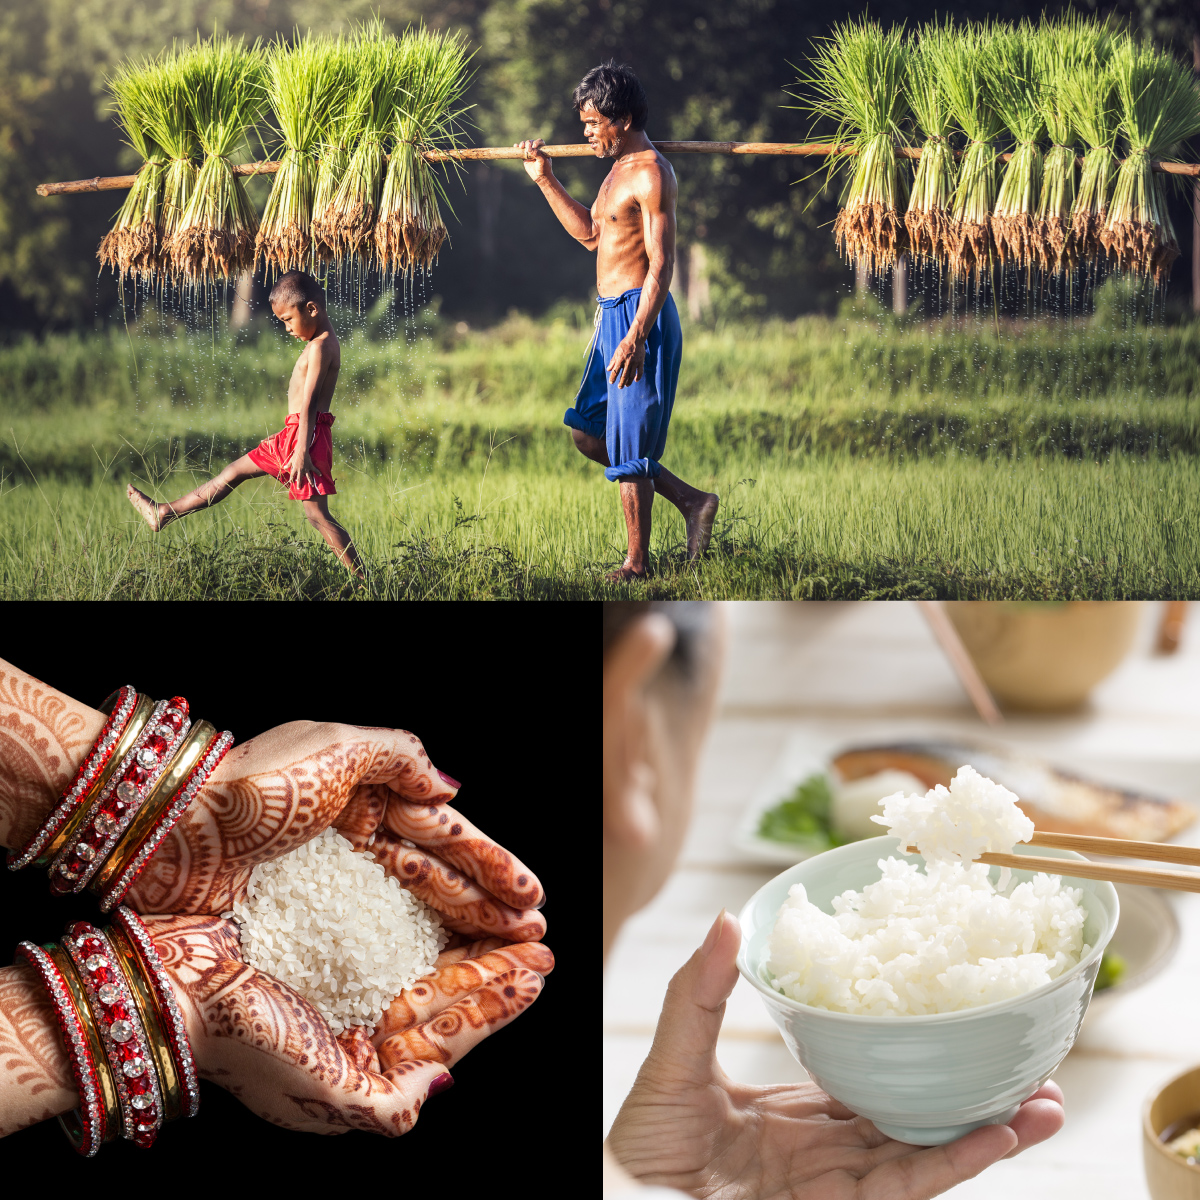 Rice field, Henna hands with rice, Bowl of rice